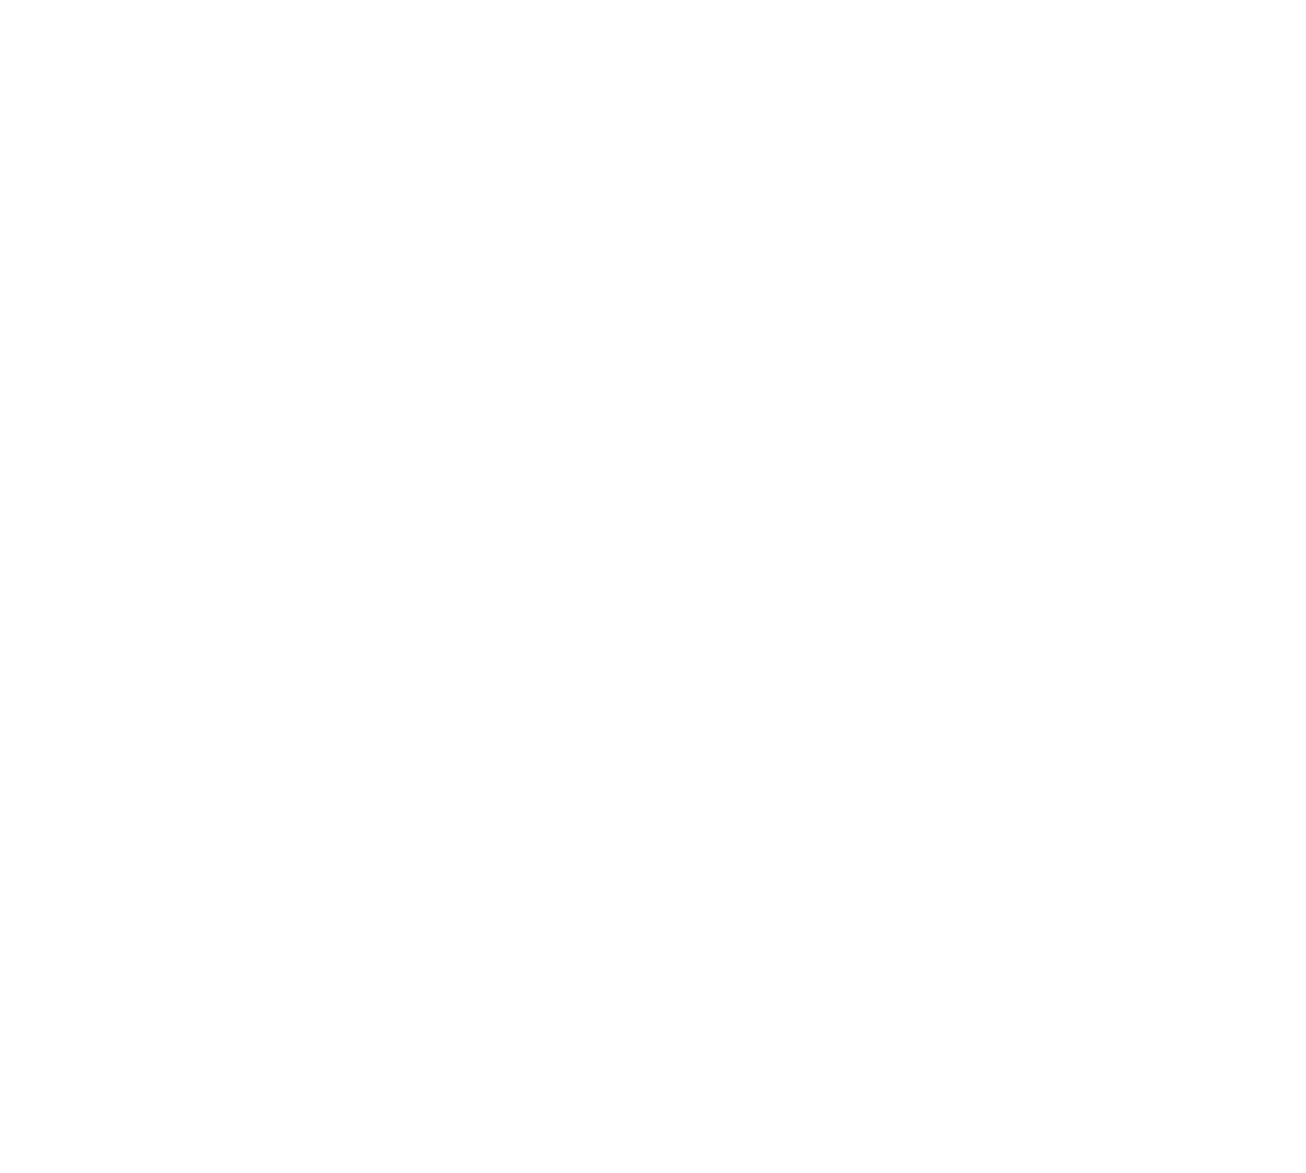 White Silhouette Png at GetDrawings.com.